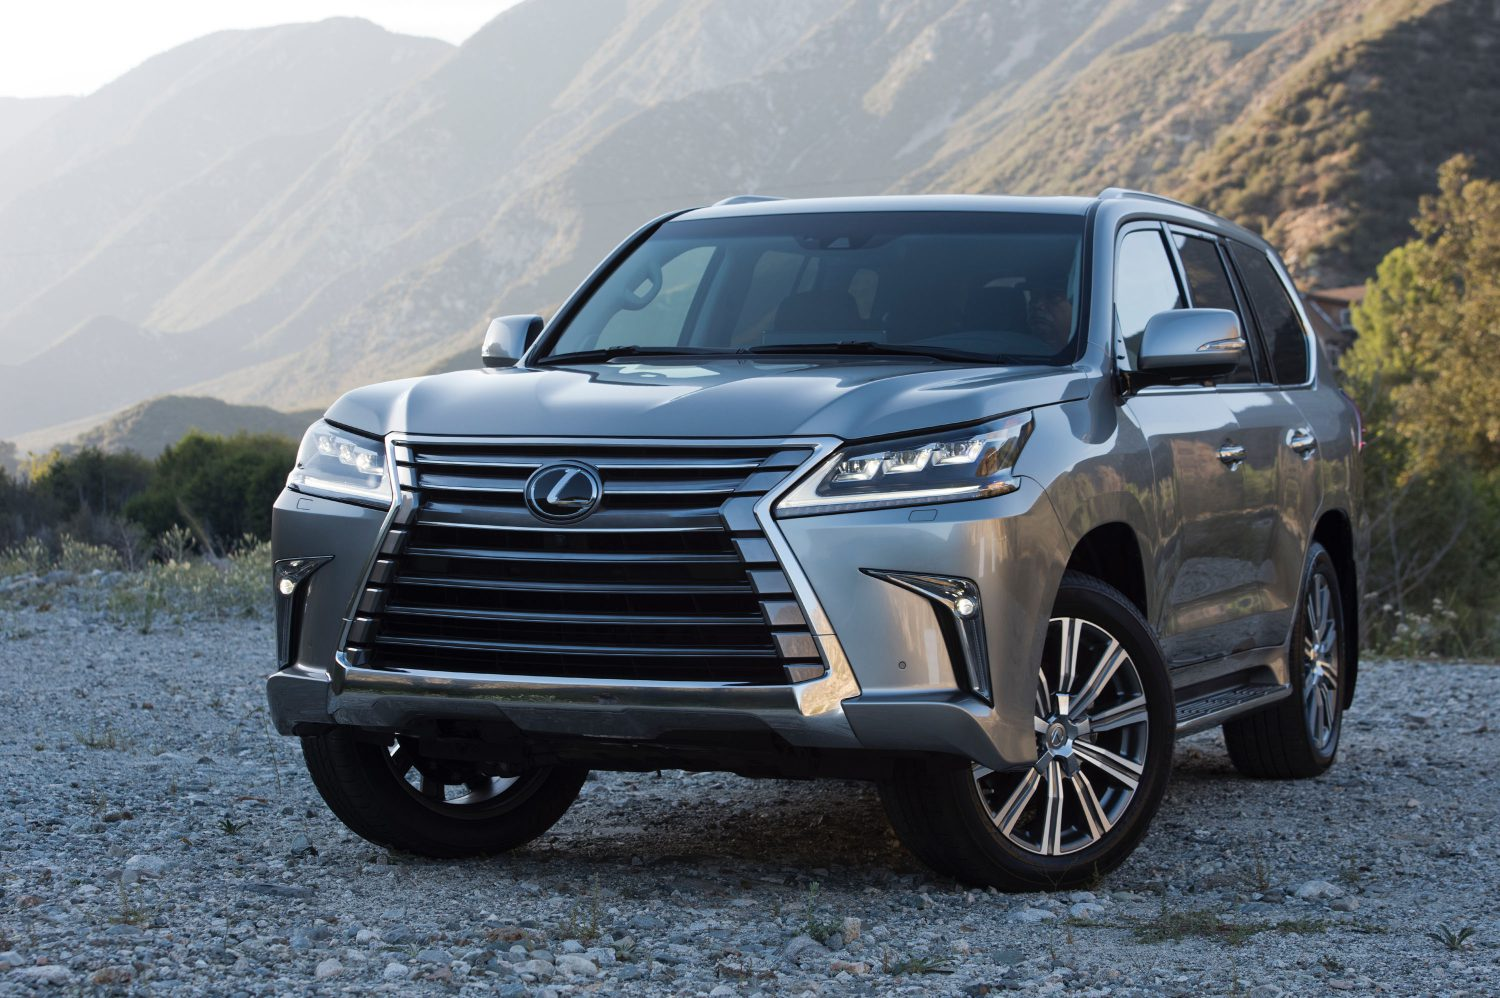 Making a Classic Entrance: Lexus Debuts Refreshed 2016 LX